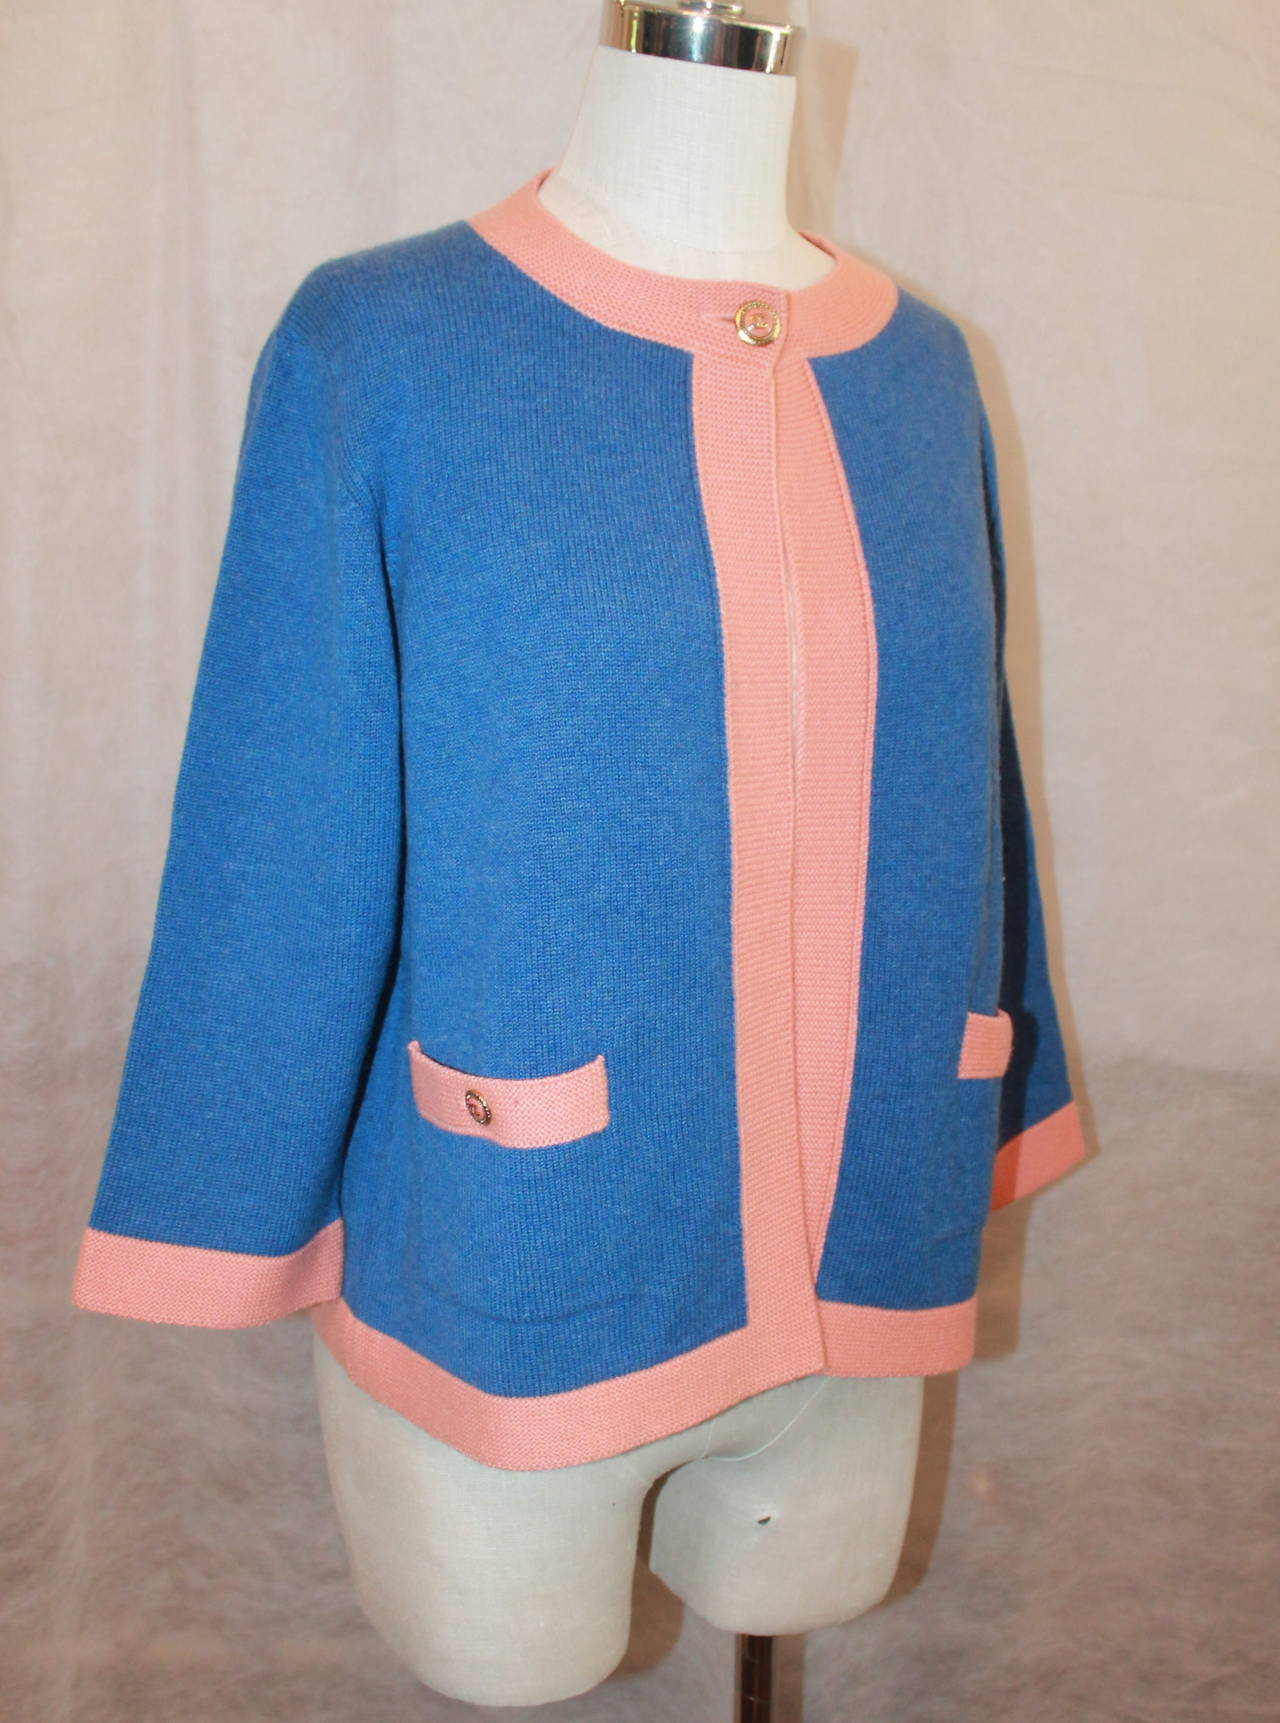 Chanel 2007 Blue & Peach Cashmere Sweater - 46. This round-neck sweater has a 3/4 sleeve and a single button at the top for closure. It also has 2 pockets on the side and is 100% cashmere. It is in excellent condition.